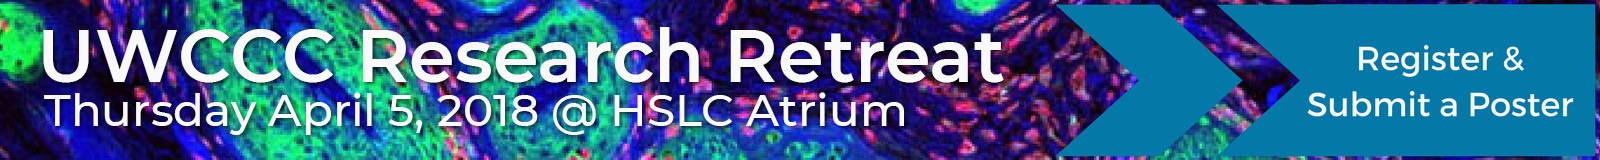 2018 Research Retreat banner